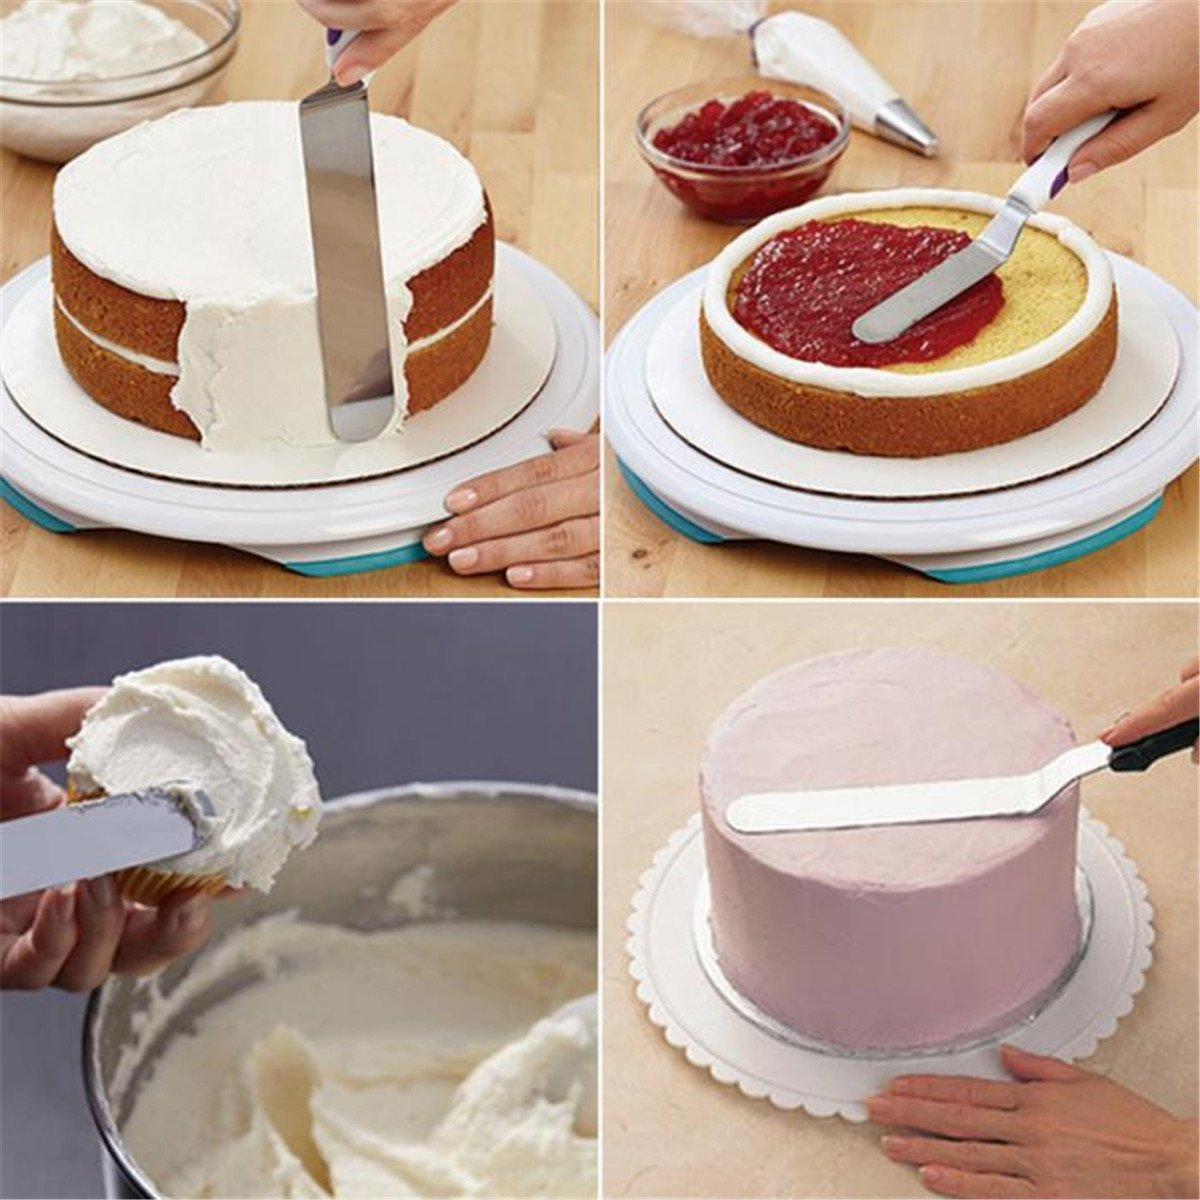 How to decorate a cake at home with icing, cream, mastic, fruit